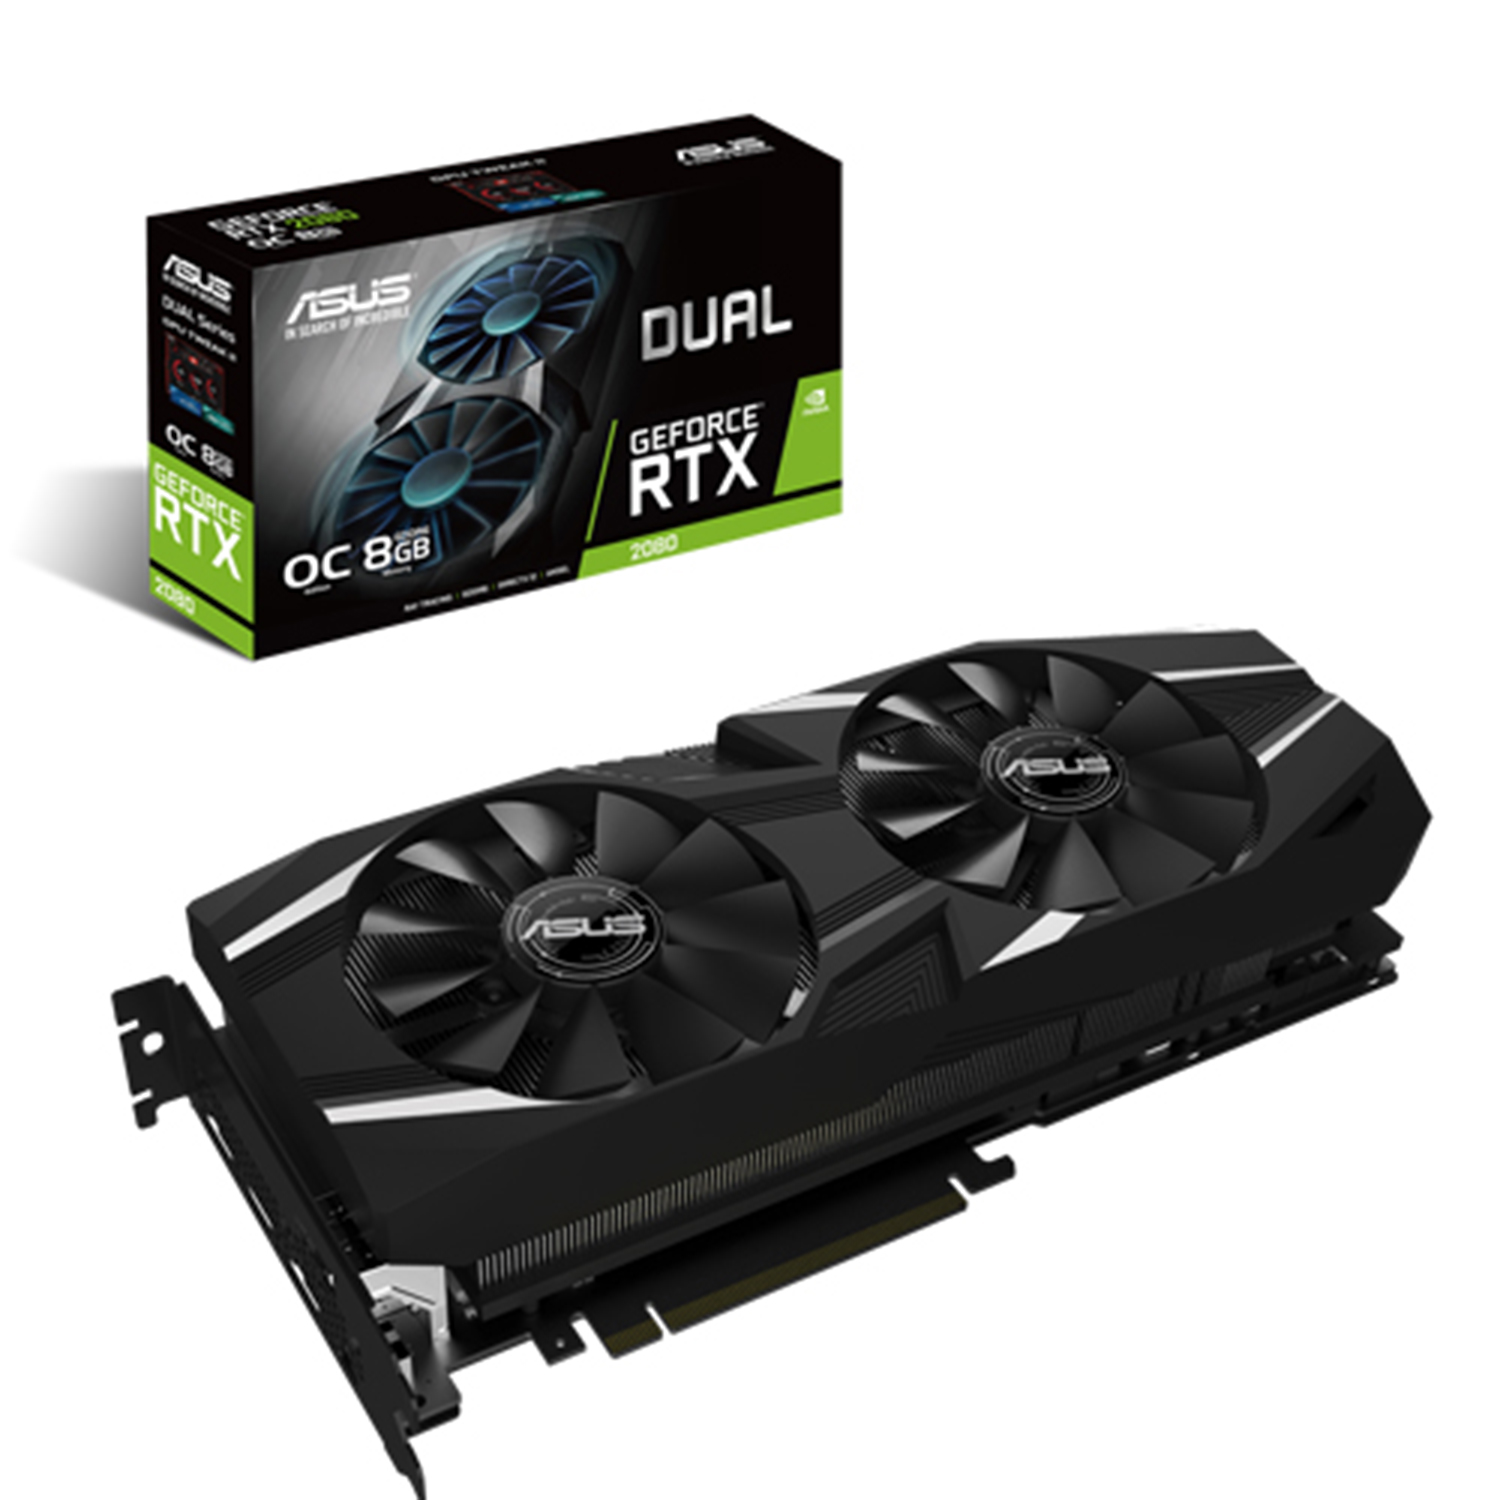 Asus GeForce RTX 2080 Dual 8G OC Graphics Card